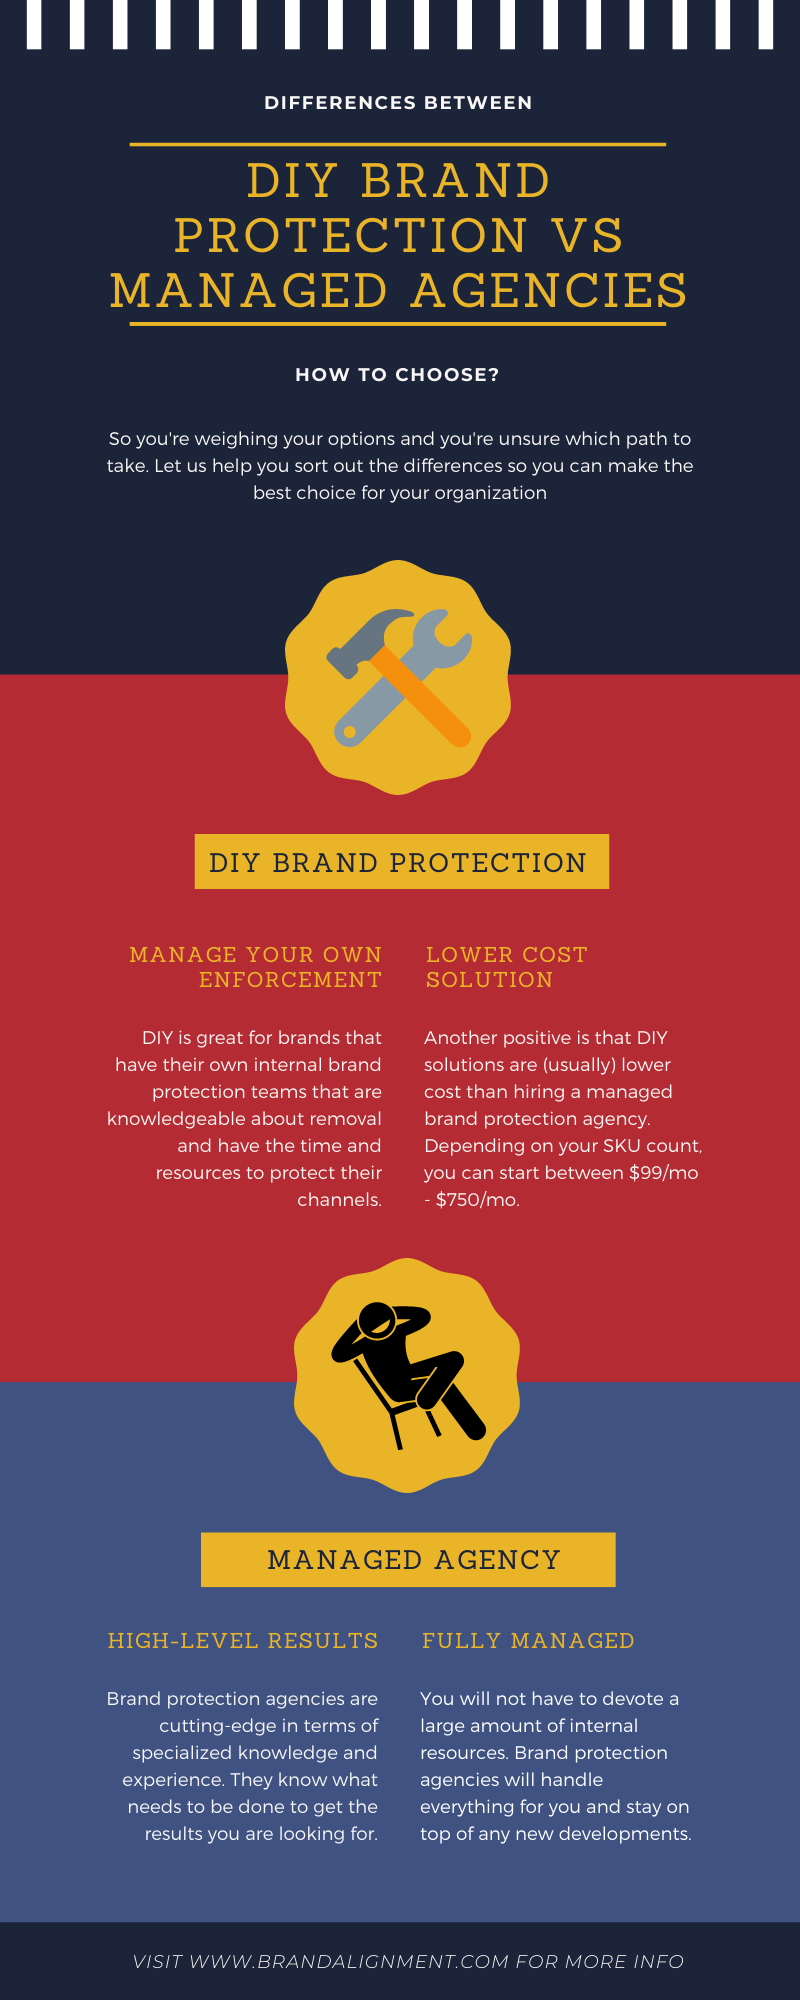 Self Service Brand Protection vs Brand Protection Agency